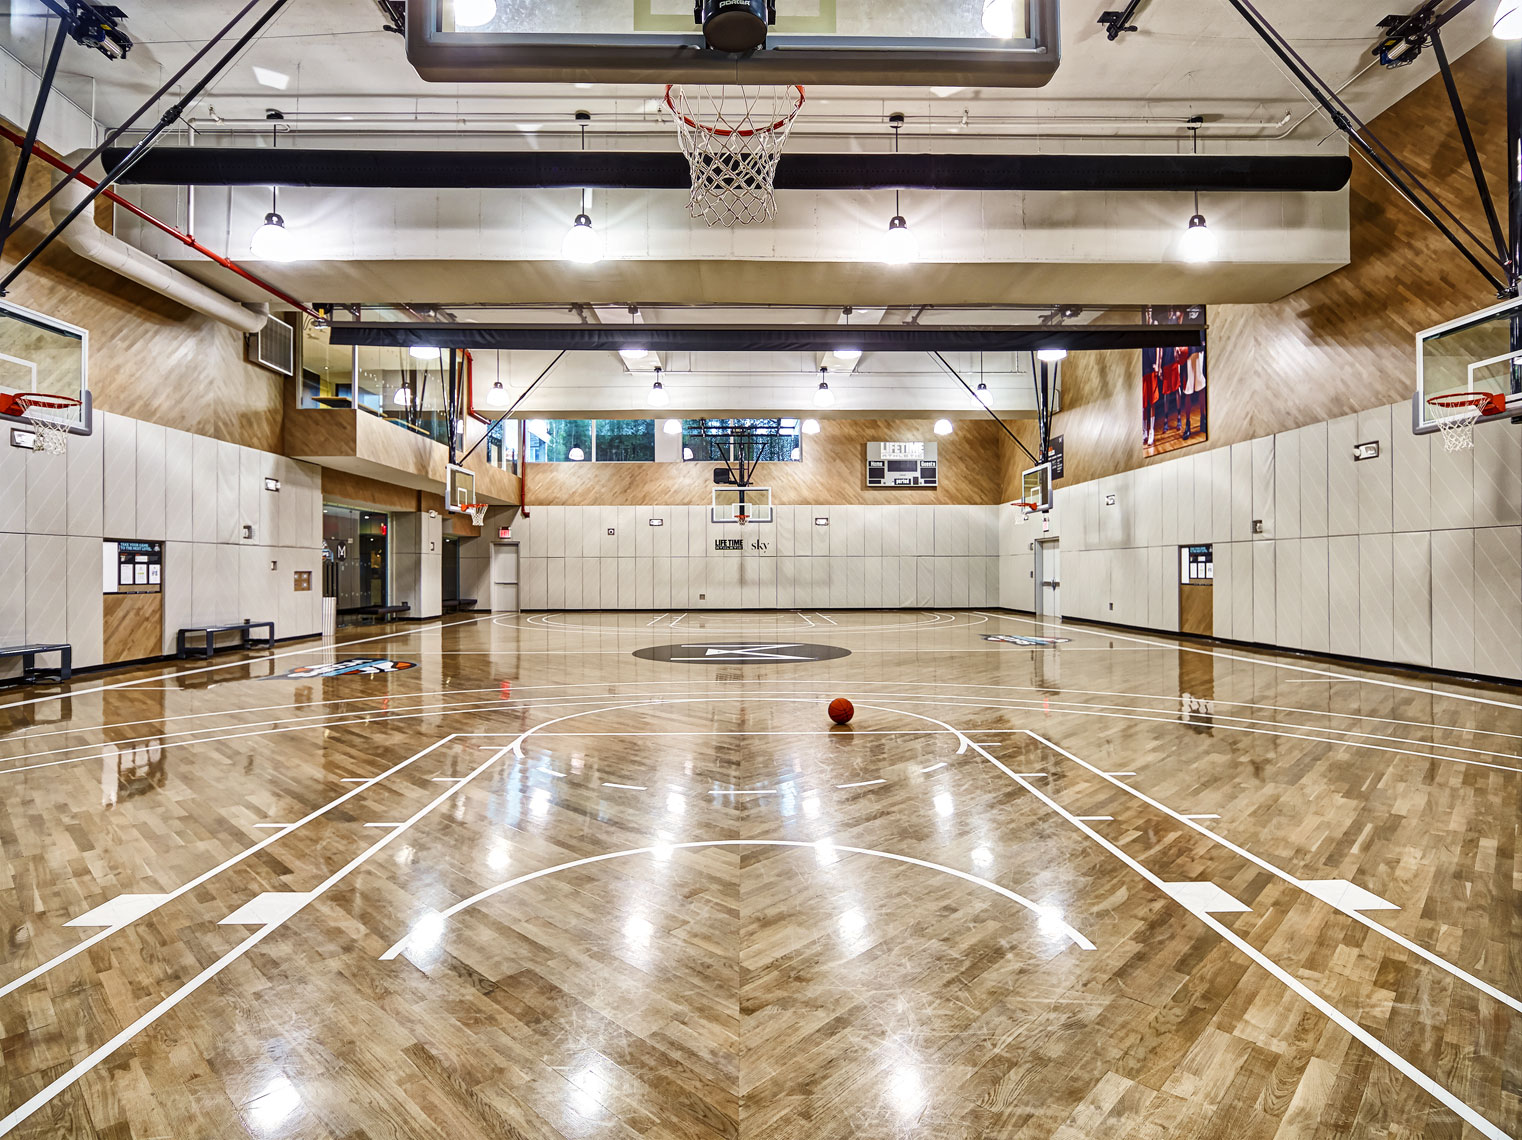 LifeTime basketball court/architectural photography